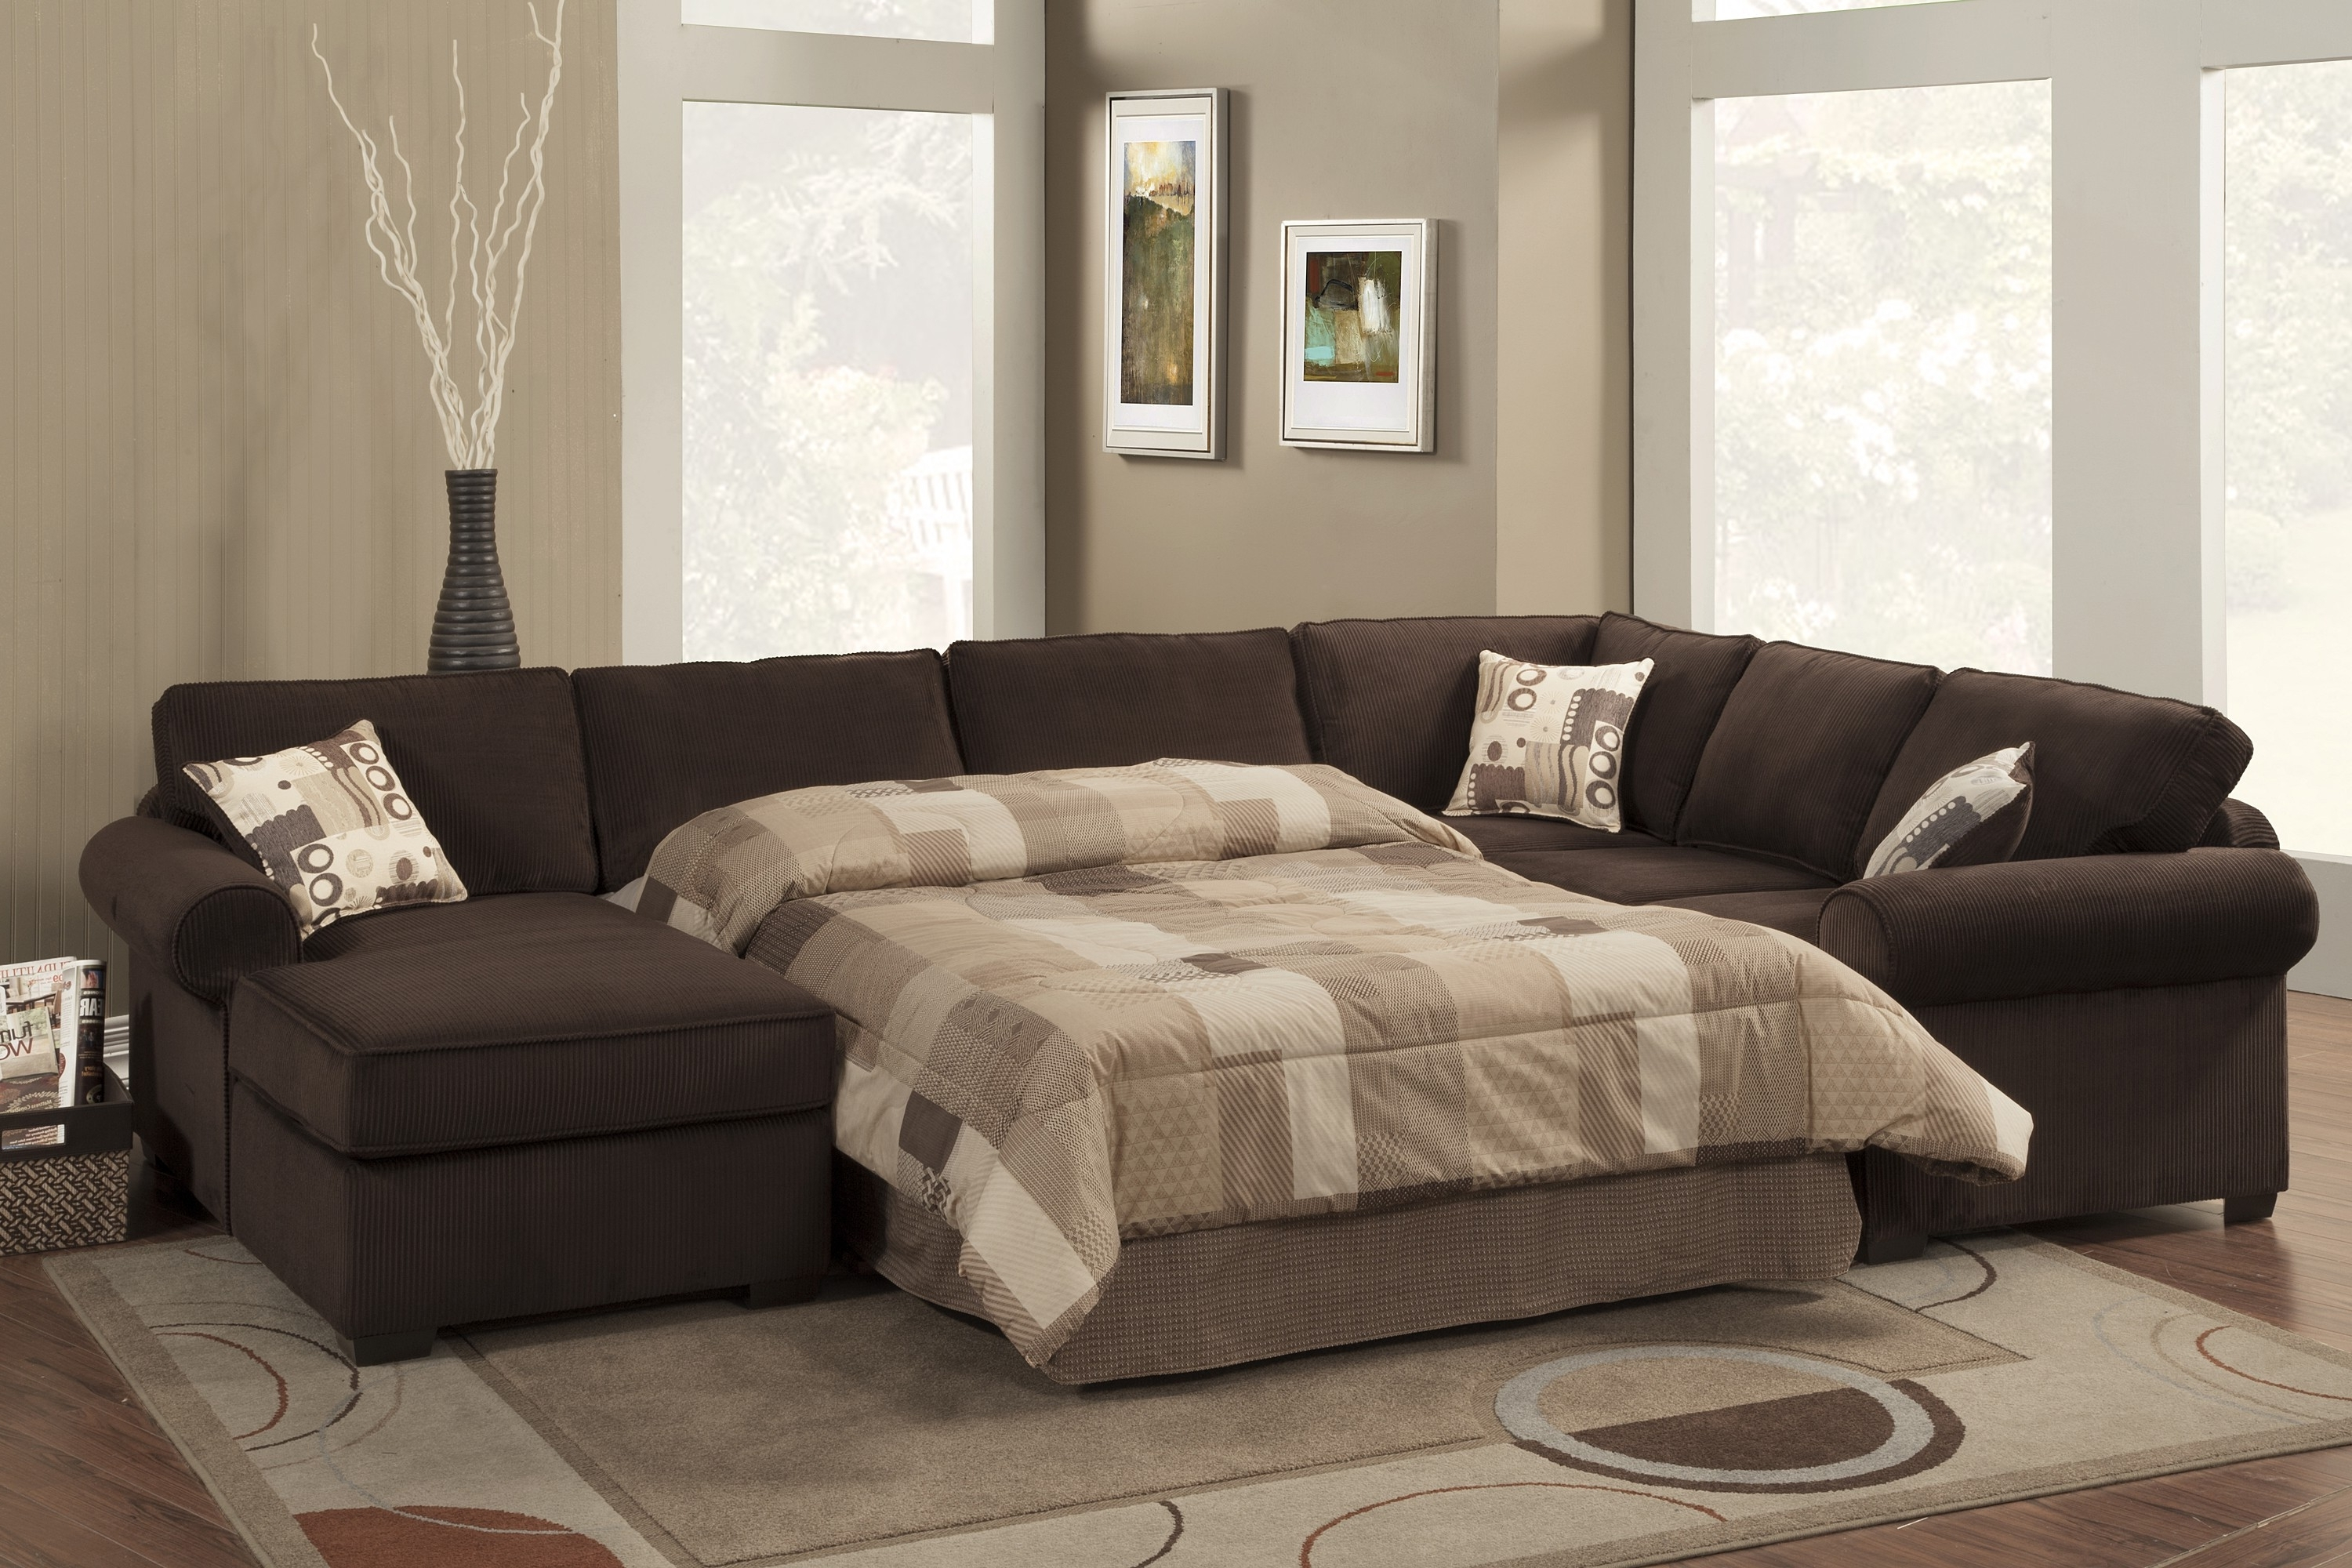 Popular Sofa : Lovely Sectional Sofa Queen Bed Pull Out Couch Quality Beds Throughout Adjustable Sectional Sofas With Queen Bed (View 15 of 20)